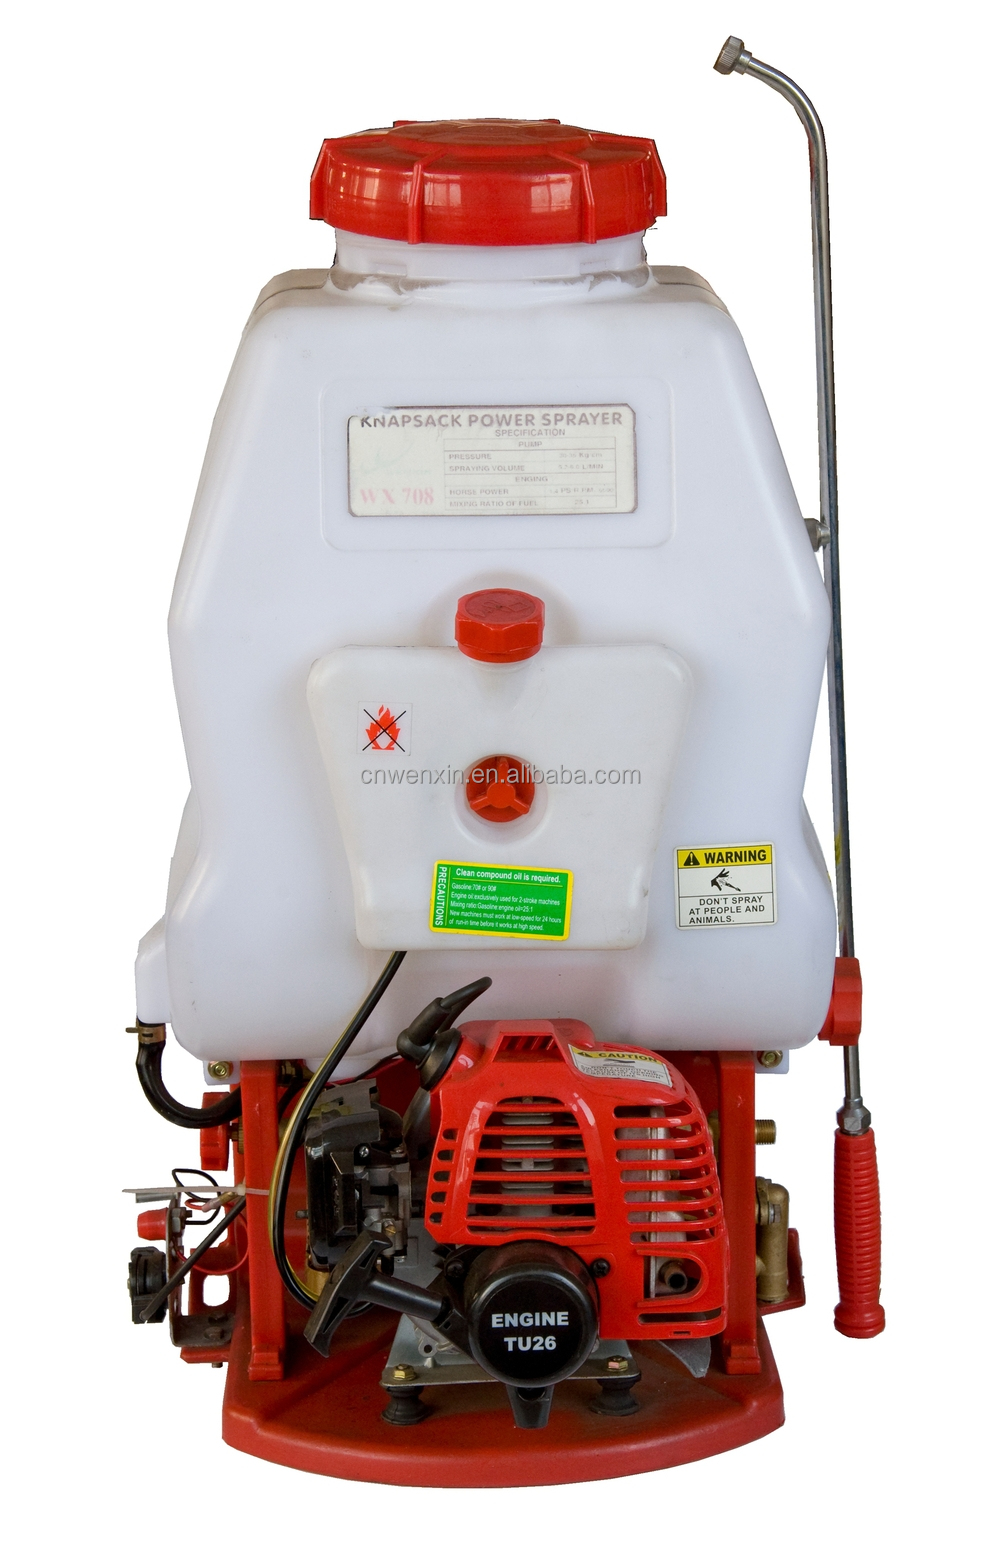 China Hot Sales Agriculture Equipment Knapsack Power Sprayer Spare ...